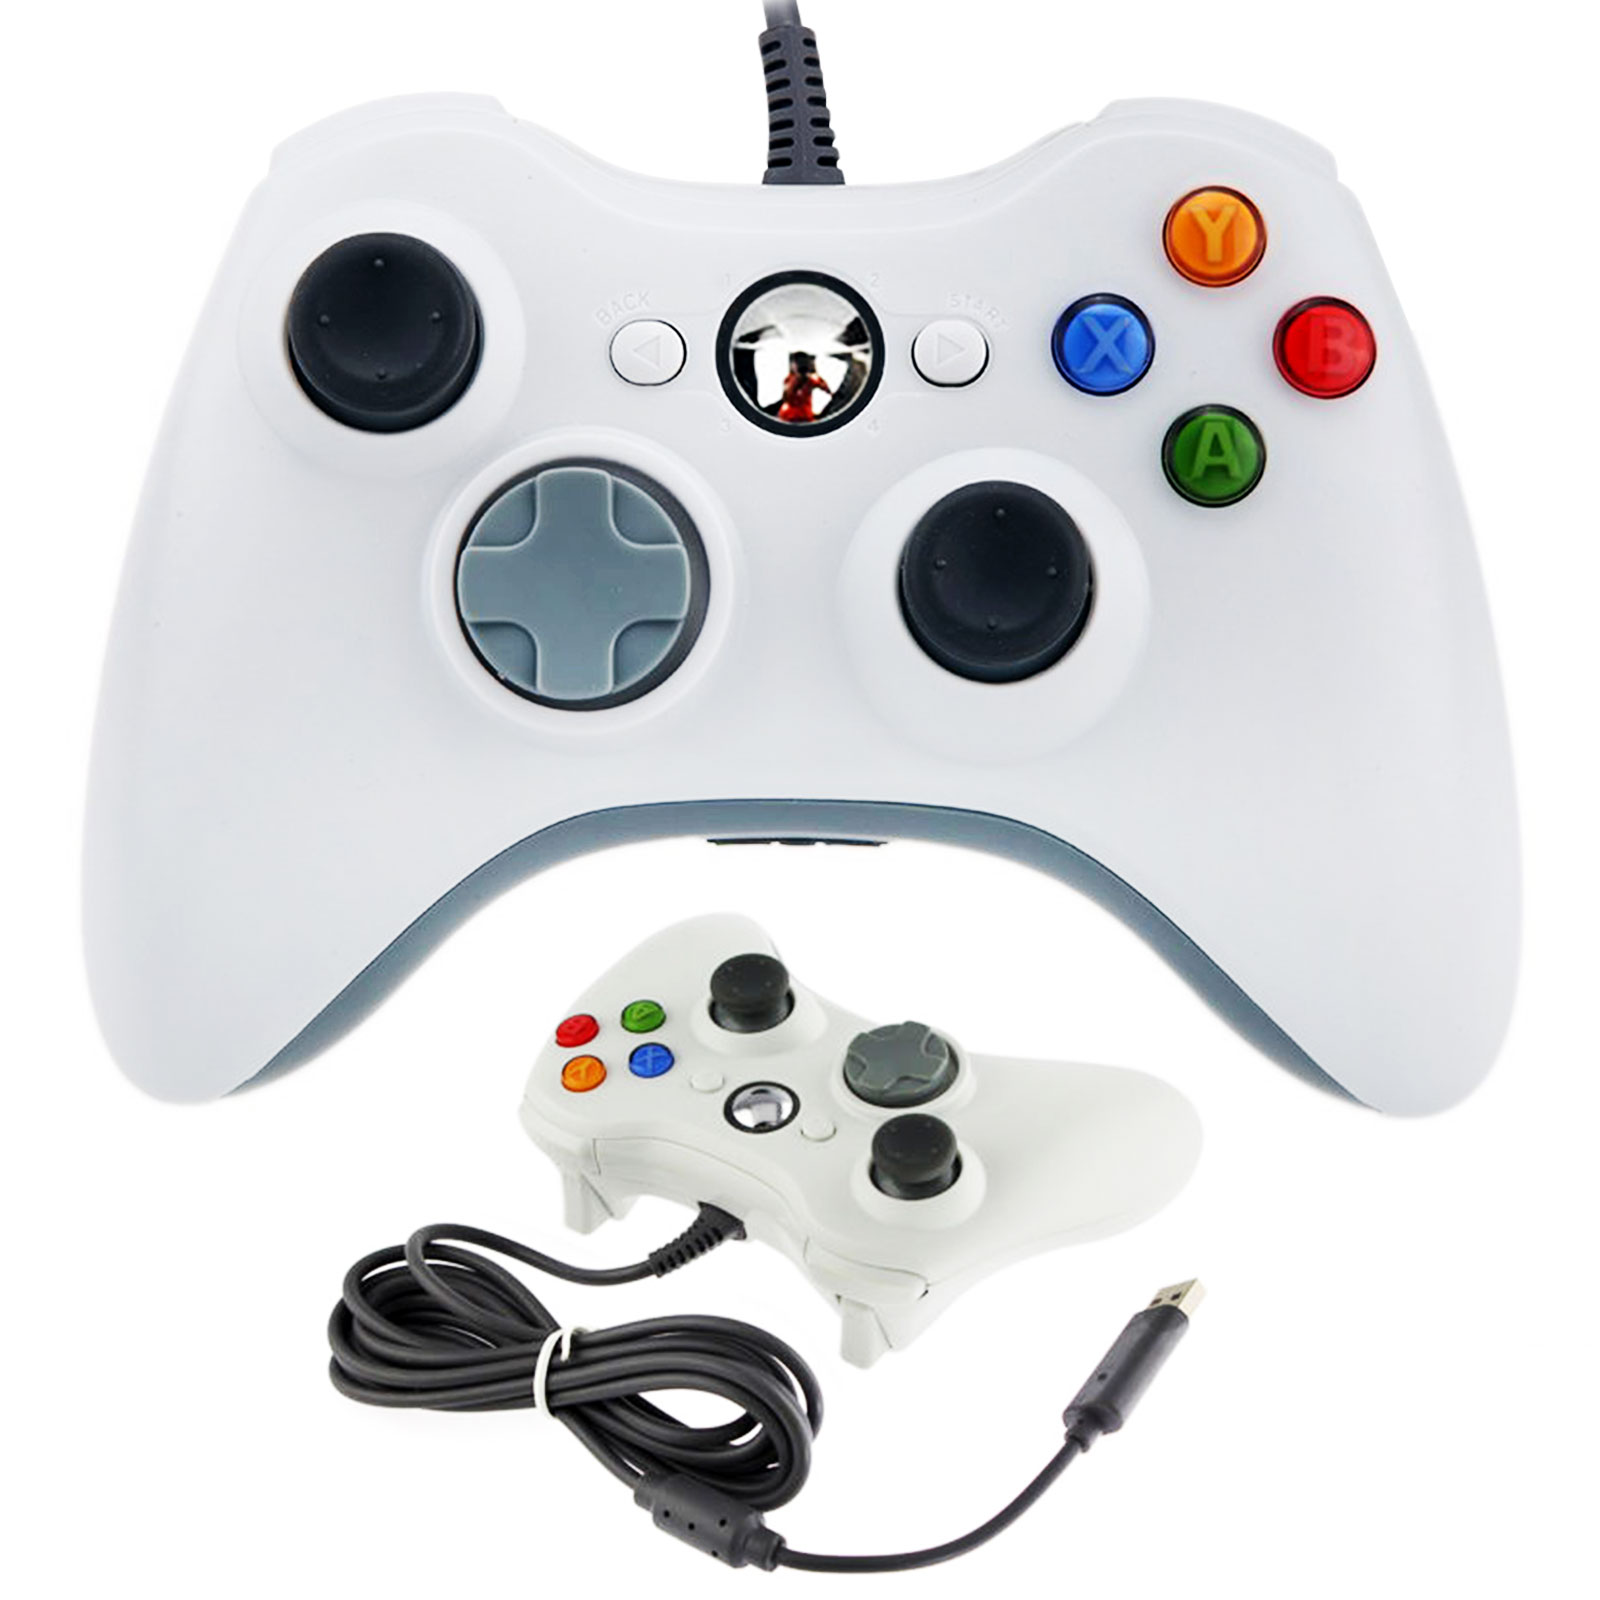 USB Wired Joystick For Xbox 360 PC Windows White